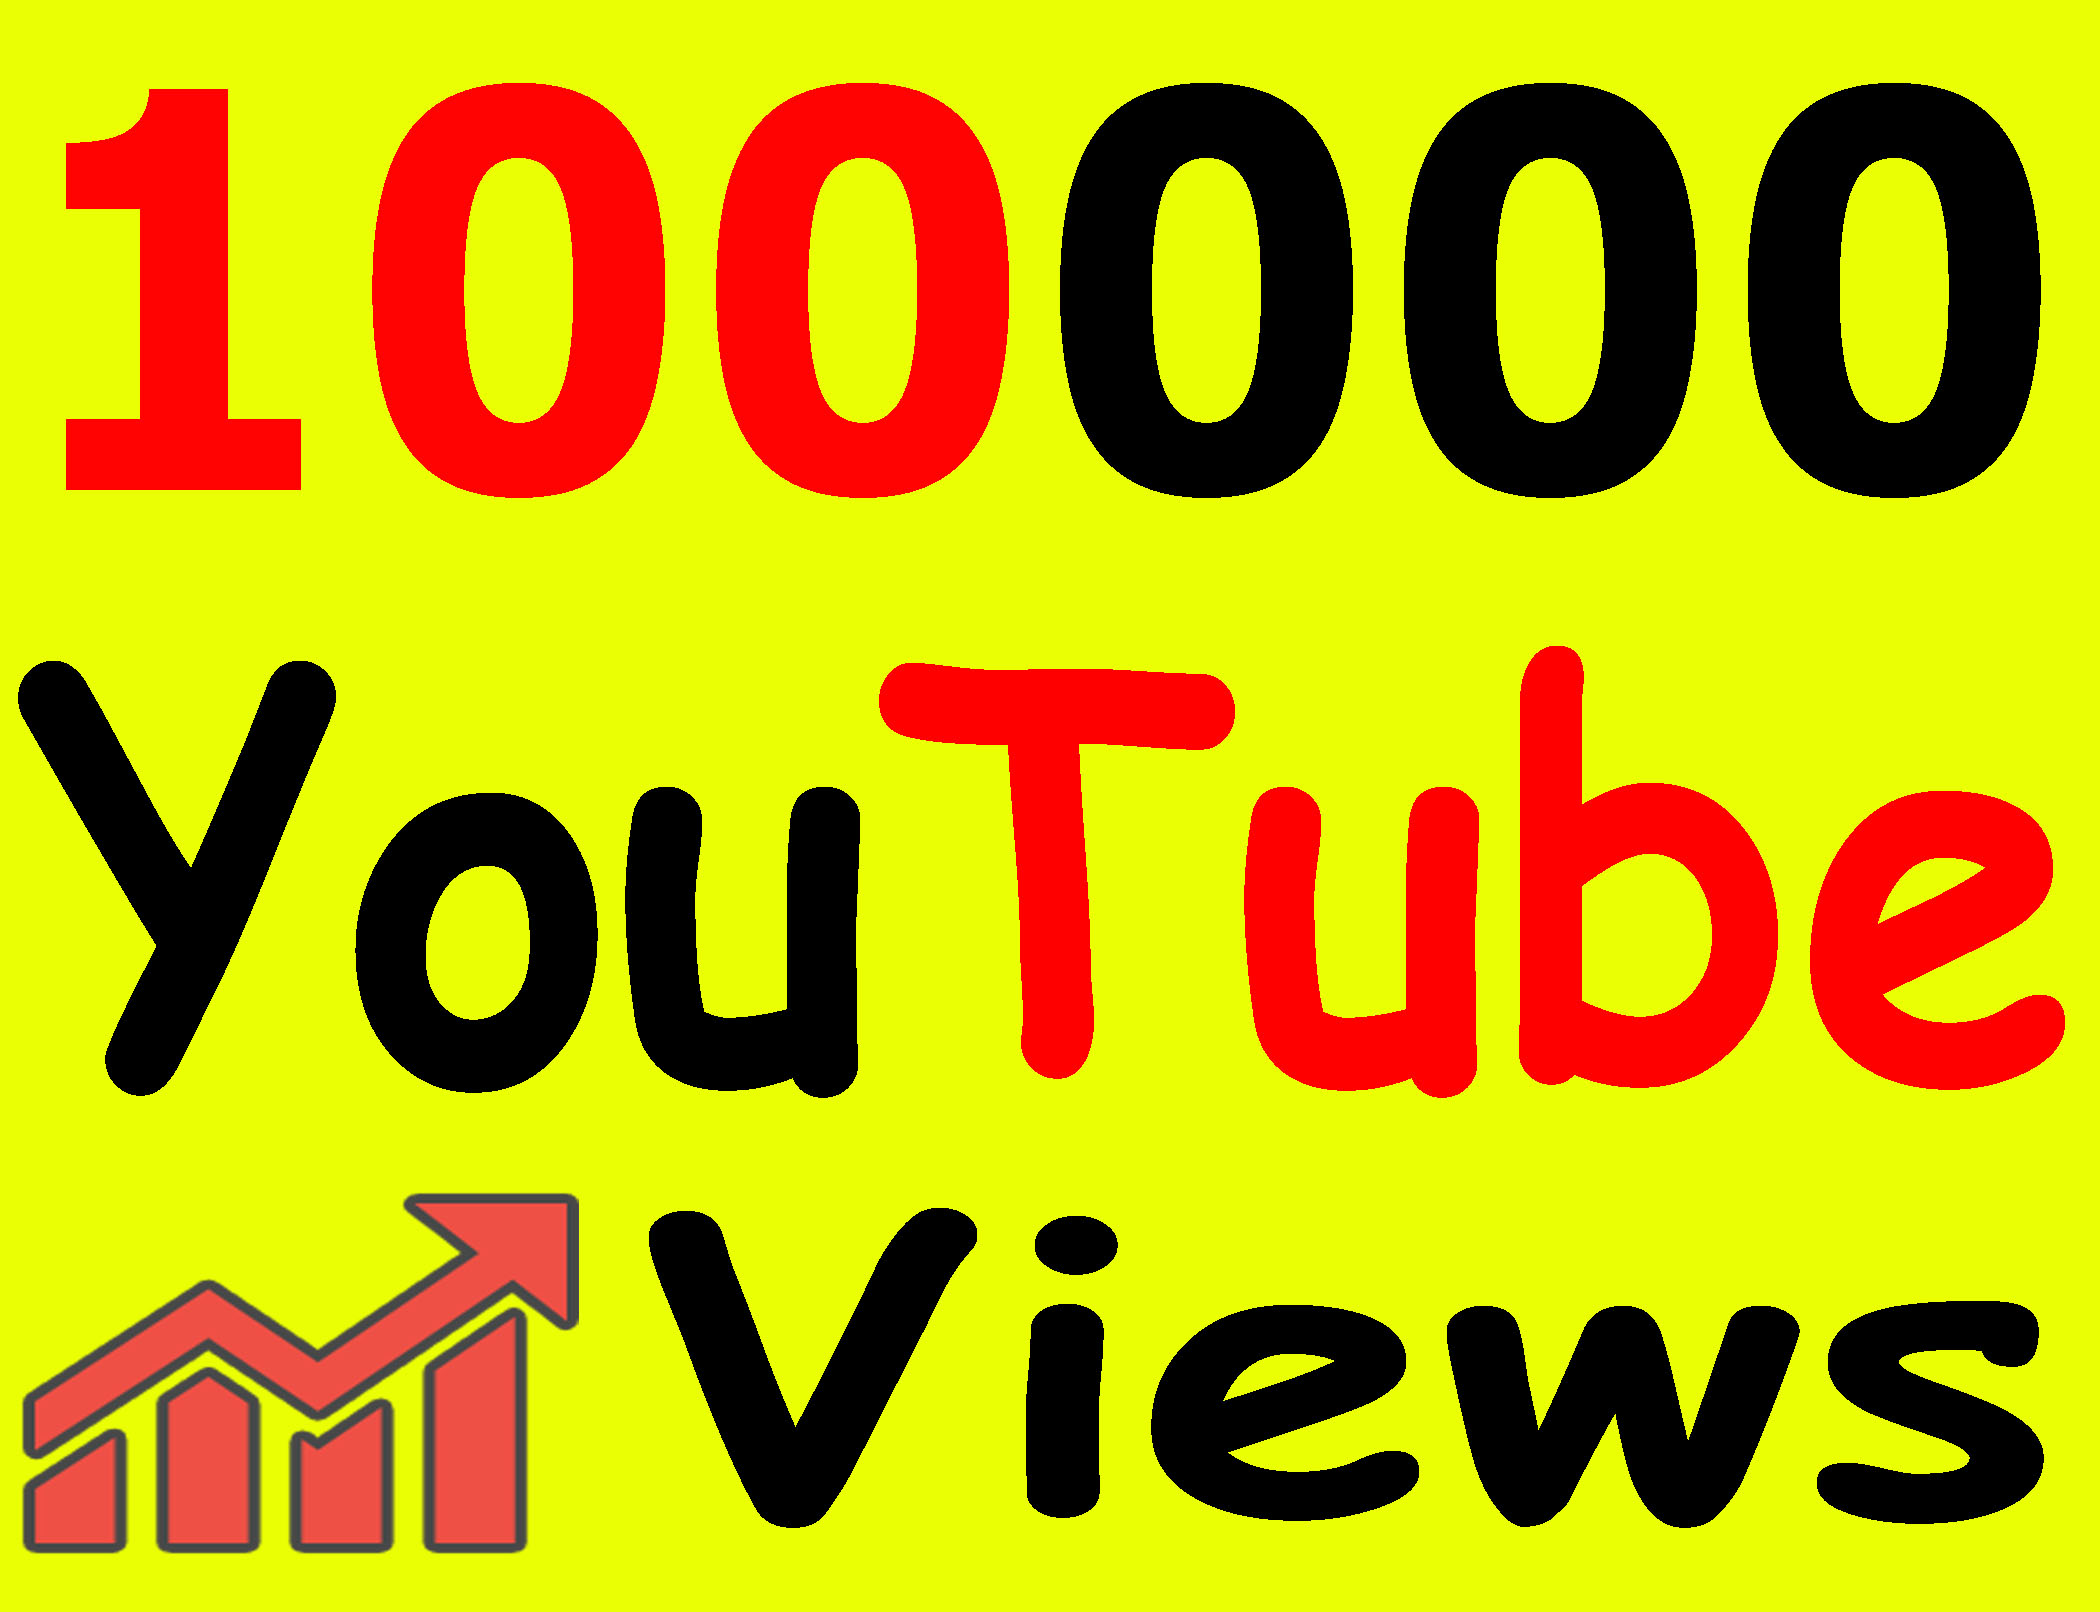 Give 100,000+ Views Full Retention Safe Lifetime Guarantee with bonus Li kes